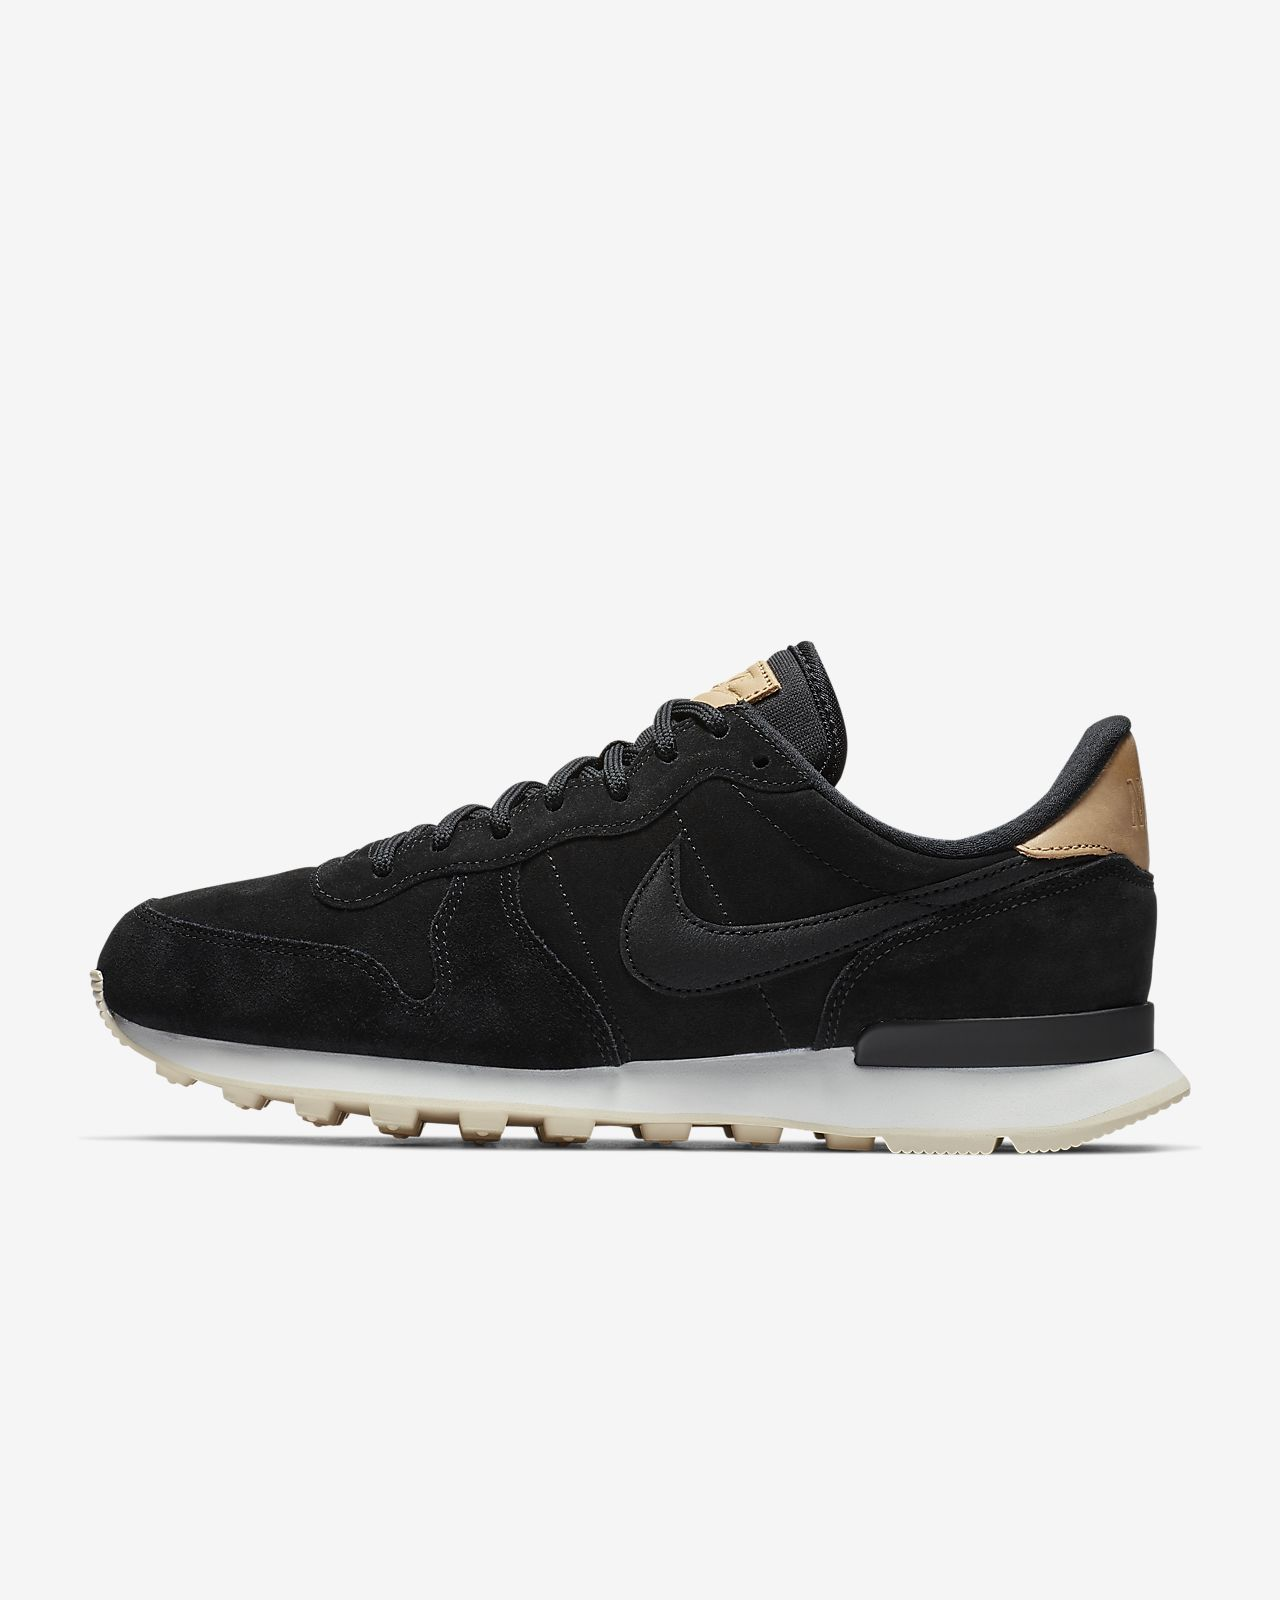 brand new f4324 314e3 ... Nike Internationalist Premium Zapatillas - Mujer